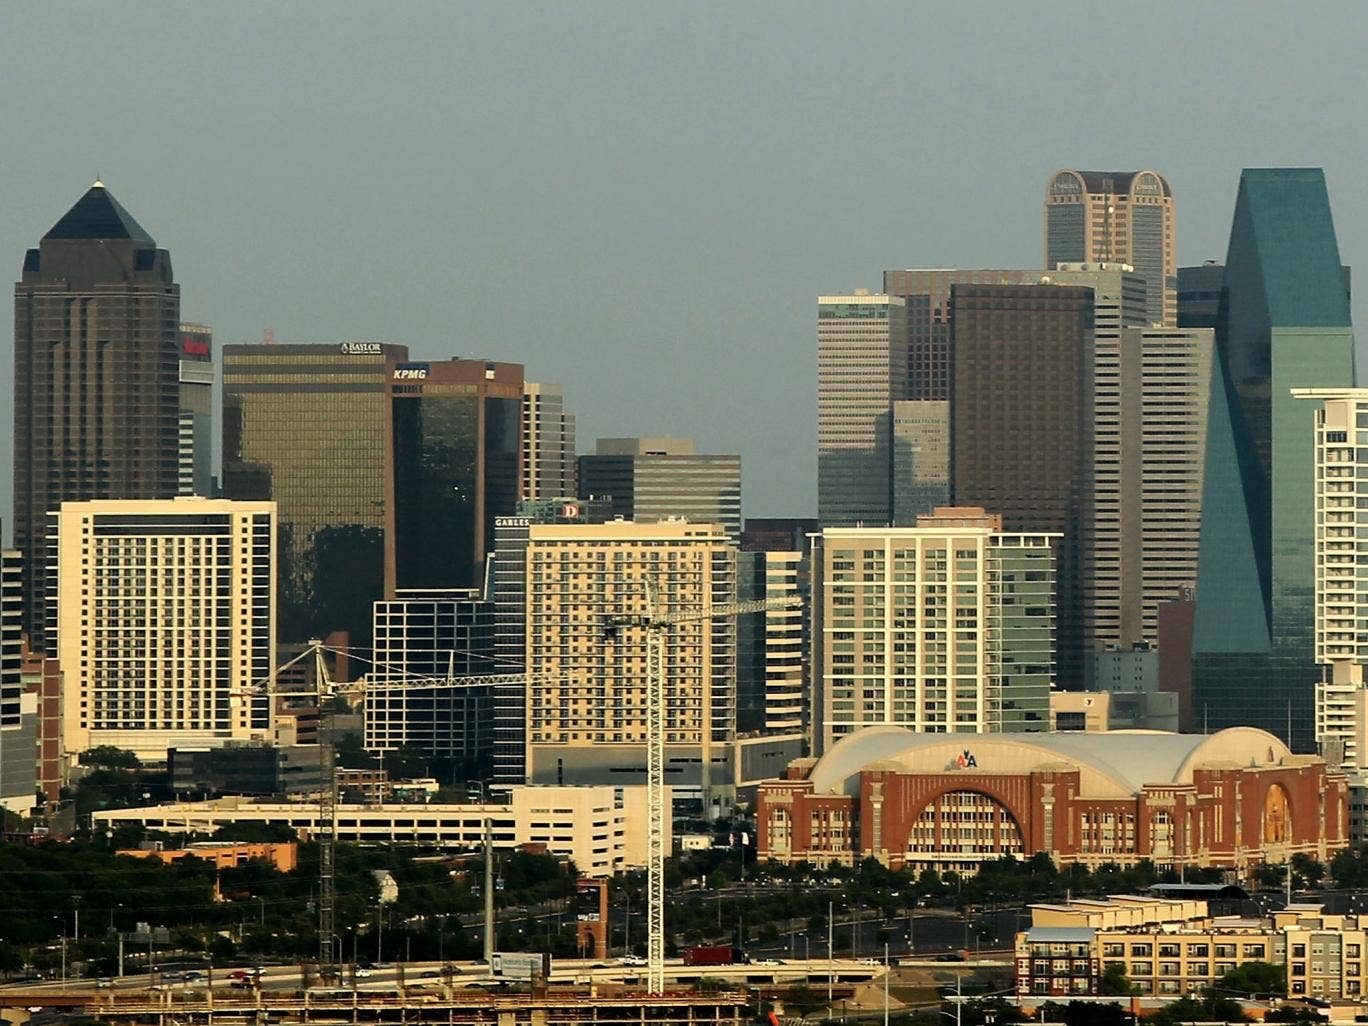 The skyline of downtown Dallas